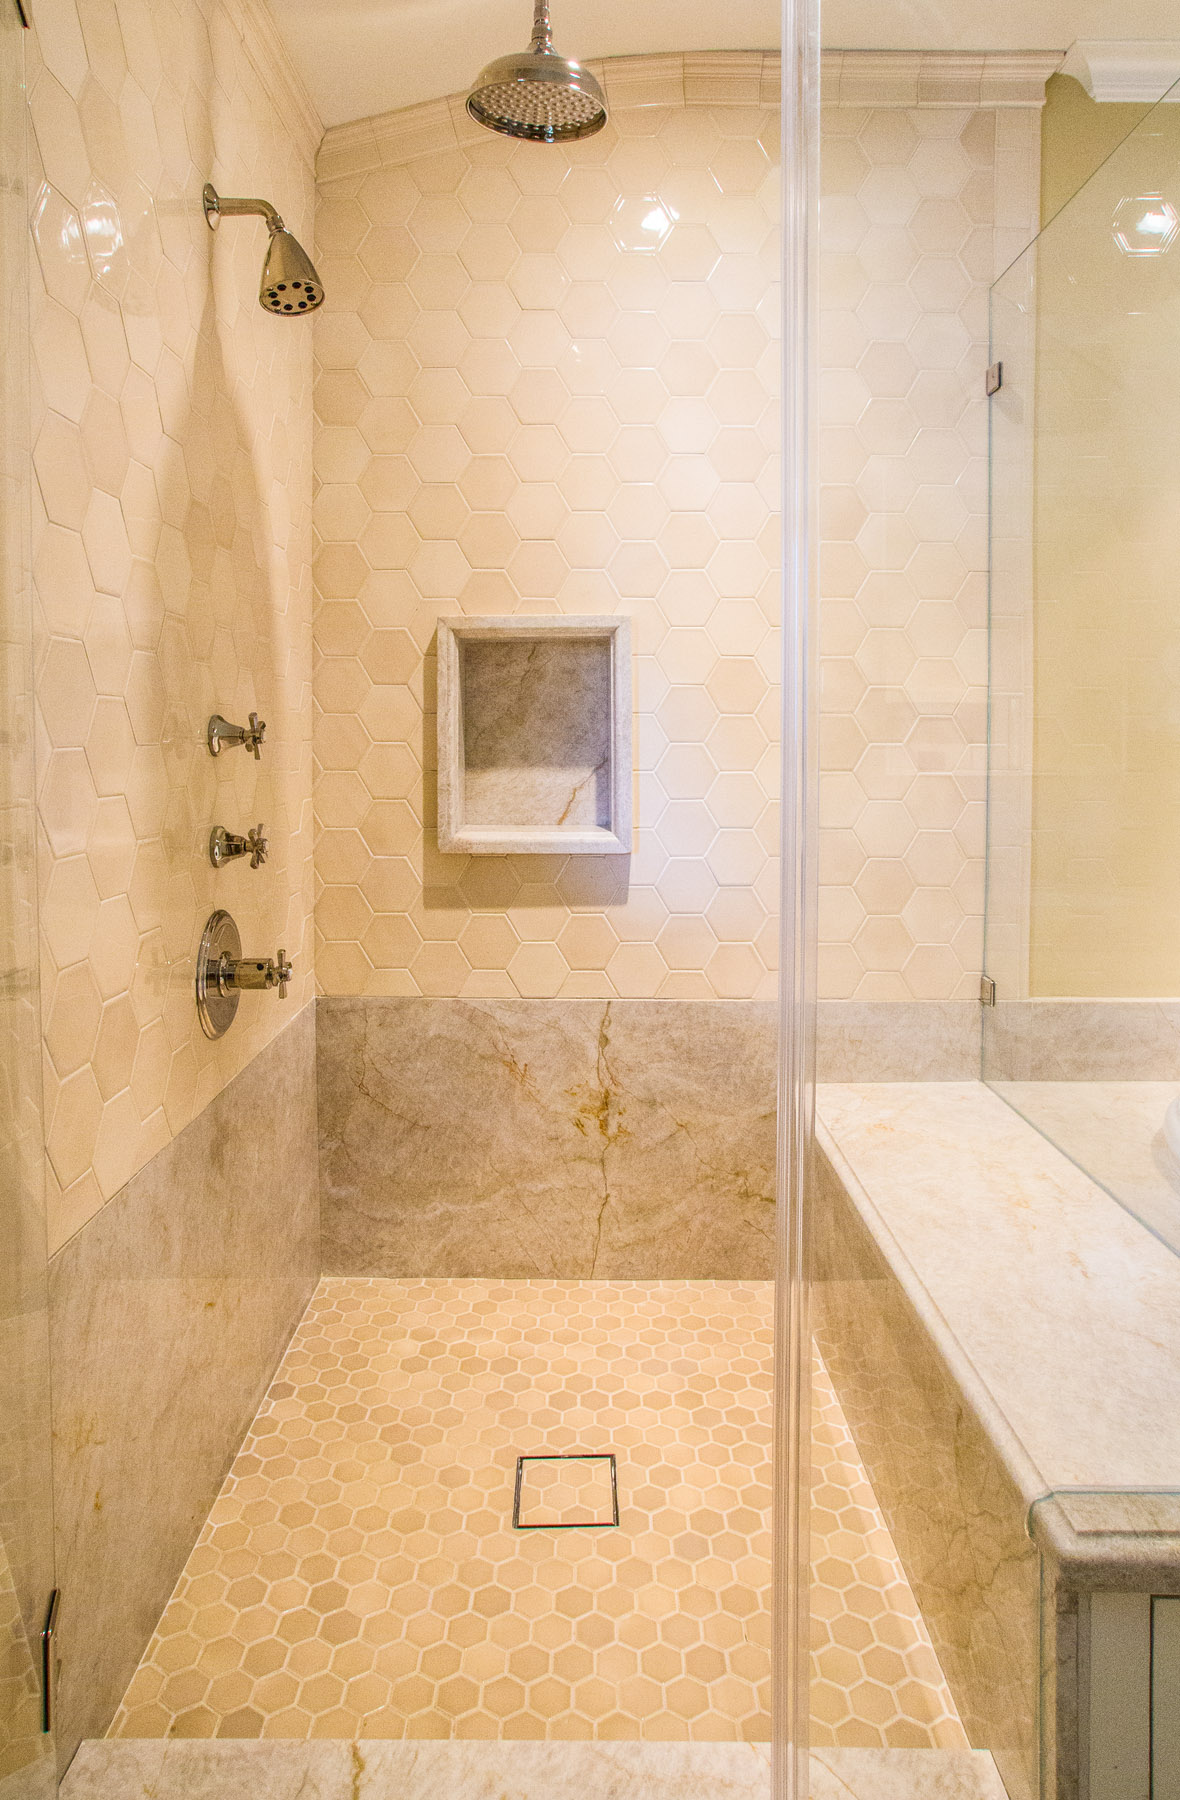 A Frameless Glass Shower With Full Bench And Rain Shower Head-